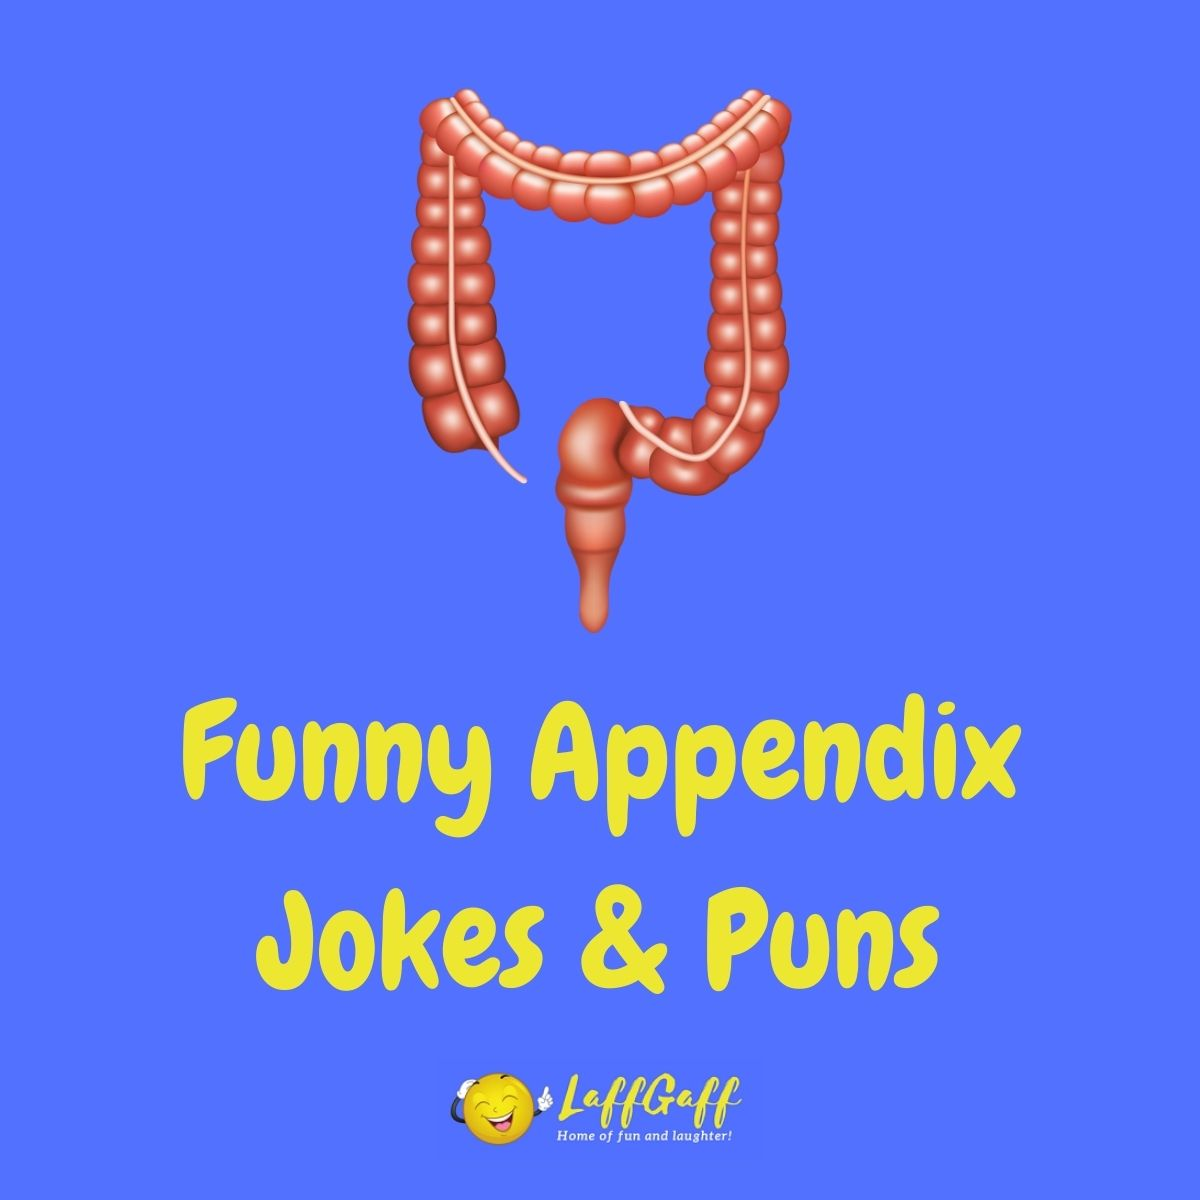 Featured image for a page of funny appendix jokes and puns.